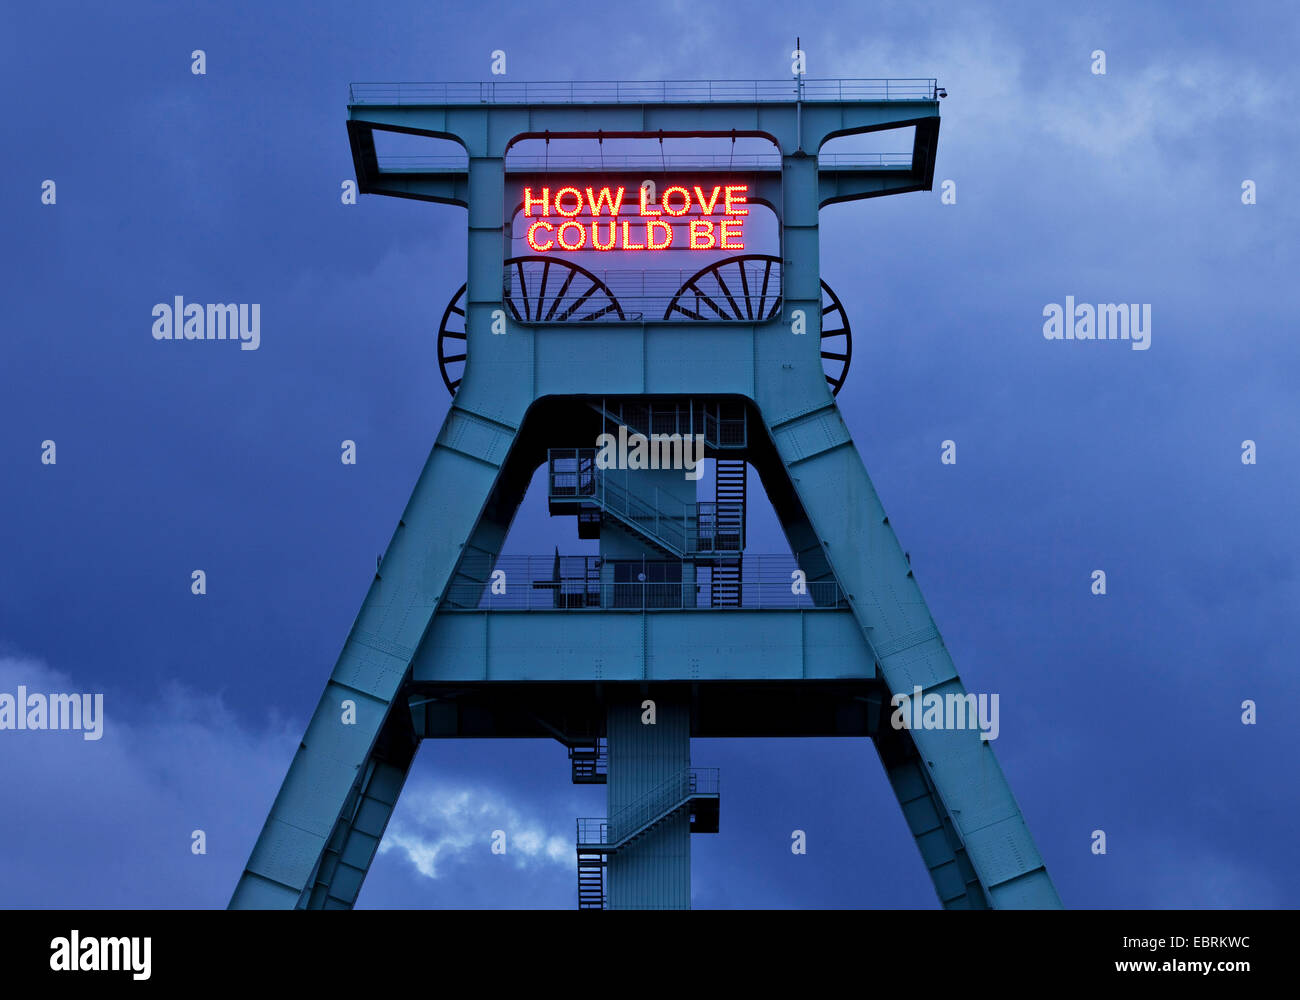 illumination HOW LOVE COULD BE on the pit frame of German mining museum, Germany, North Rhine-Westphalia, Ruhr Area, - Stock Image